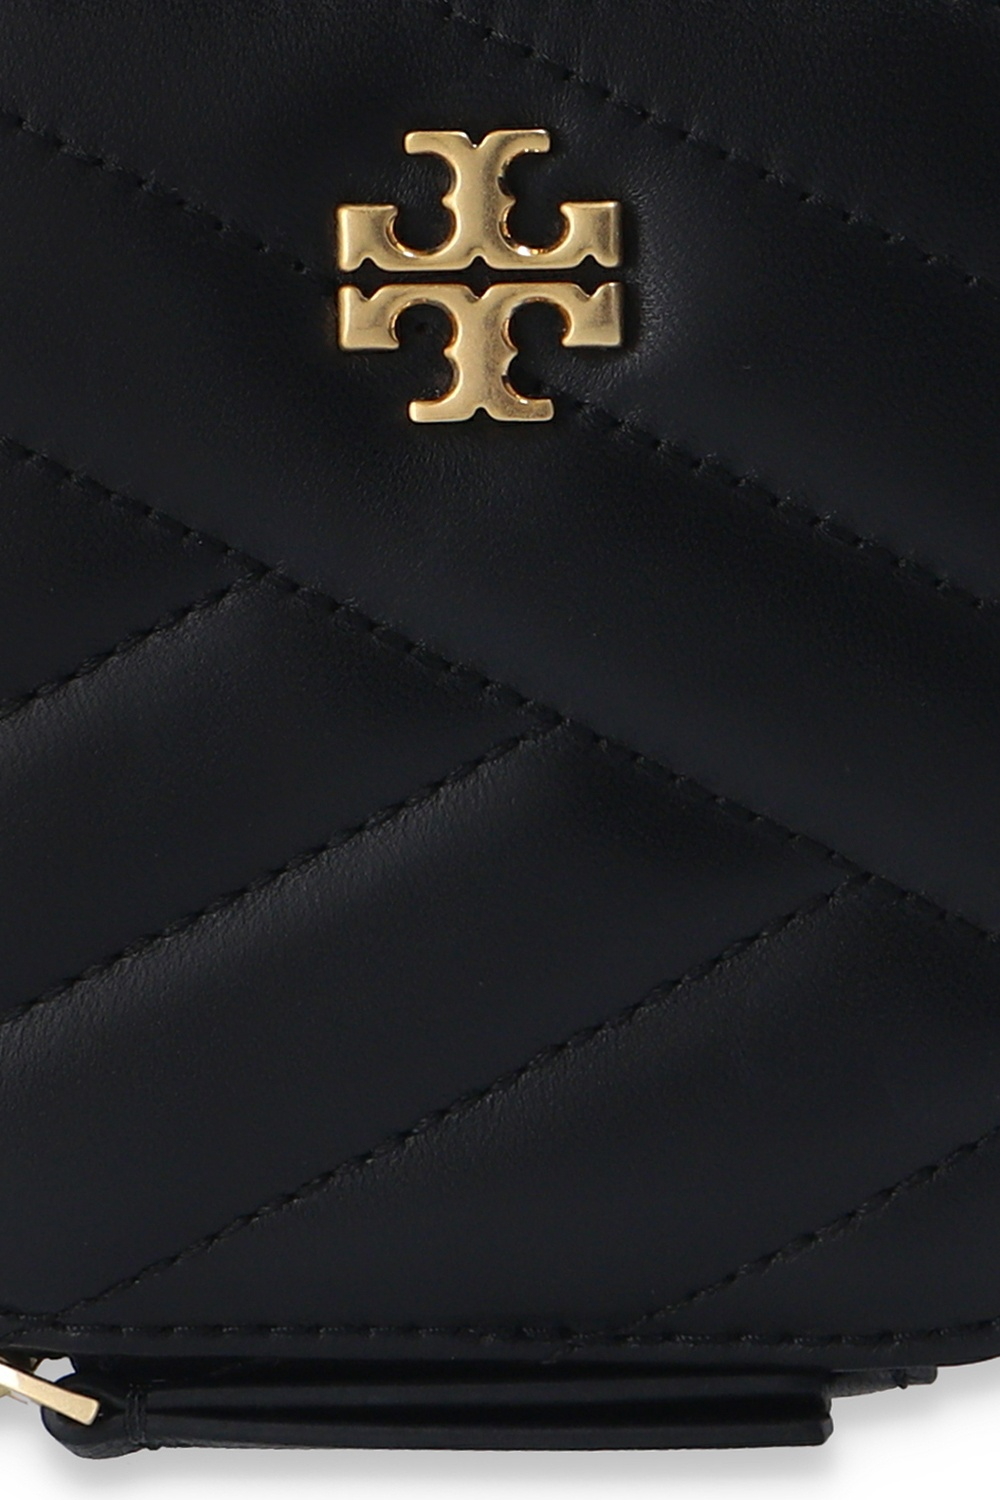 Tory Burch 'Kira' quilted jewellery case